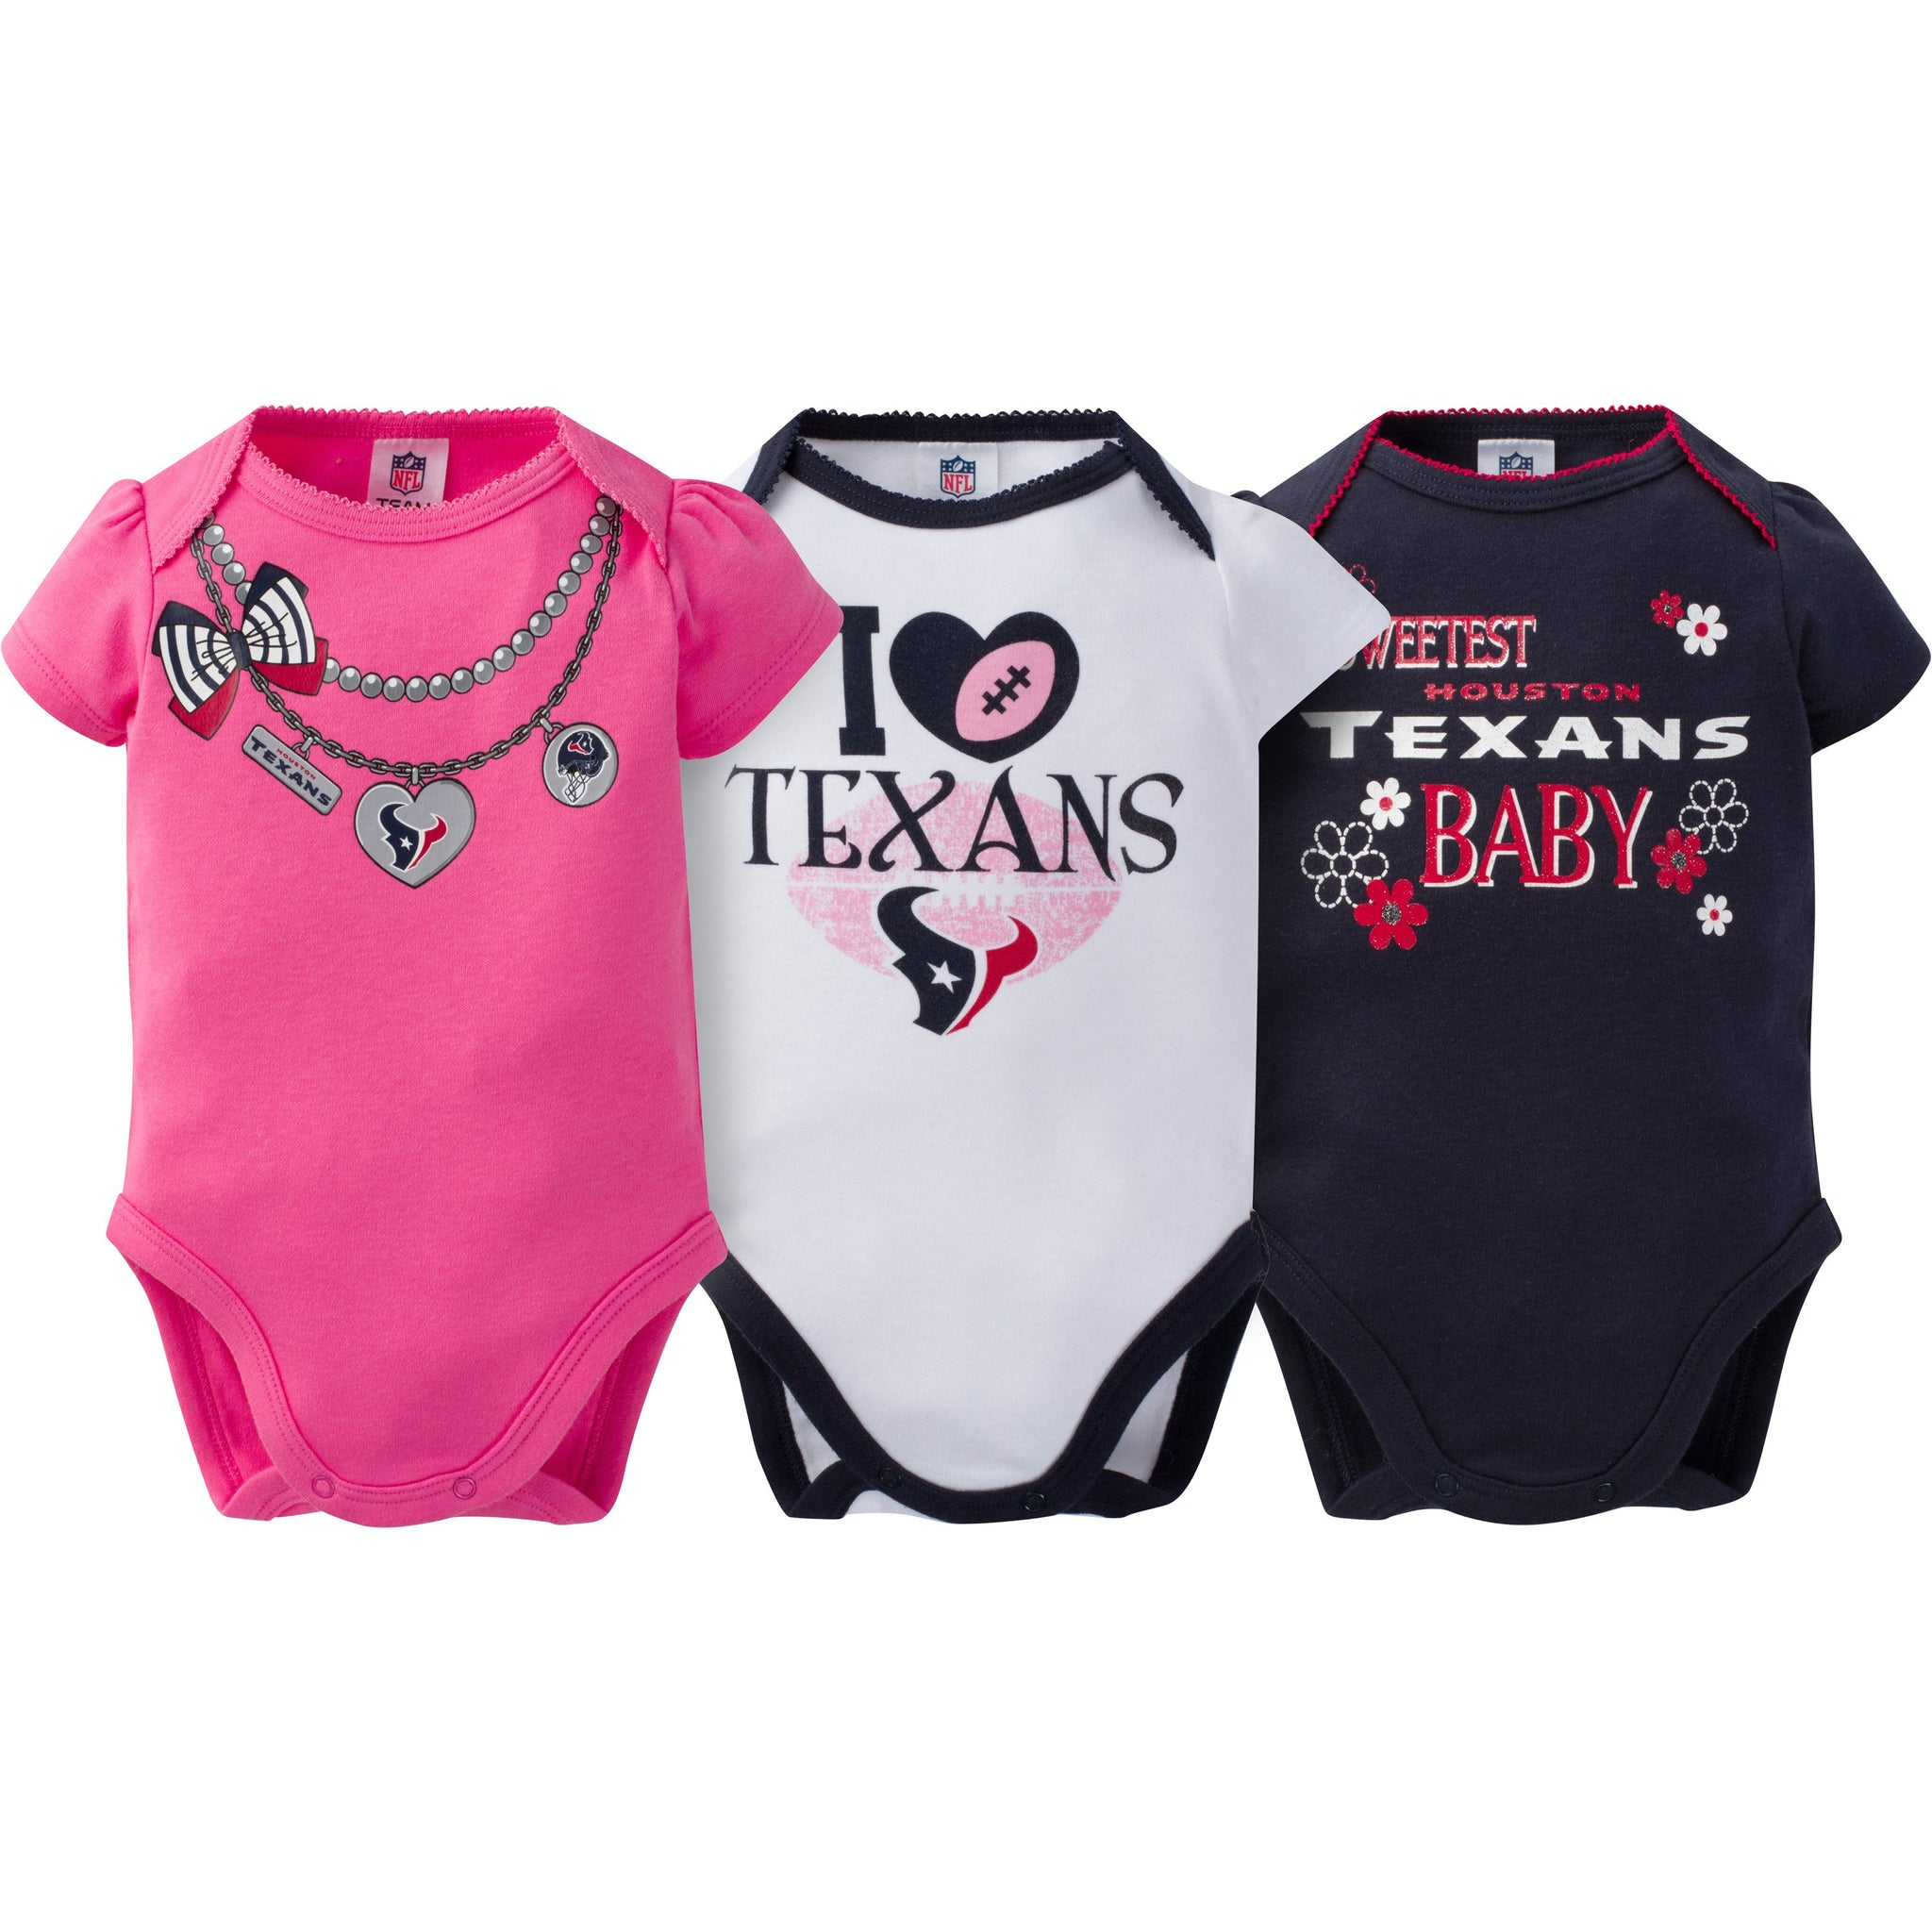 huge selection of 3cef1 44ace Houston Texans Baby Clothes, Outfits & Accessories – Gerber ...